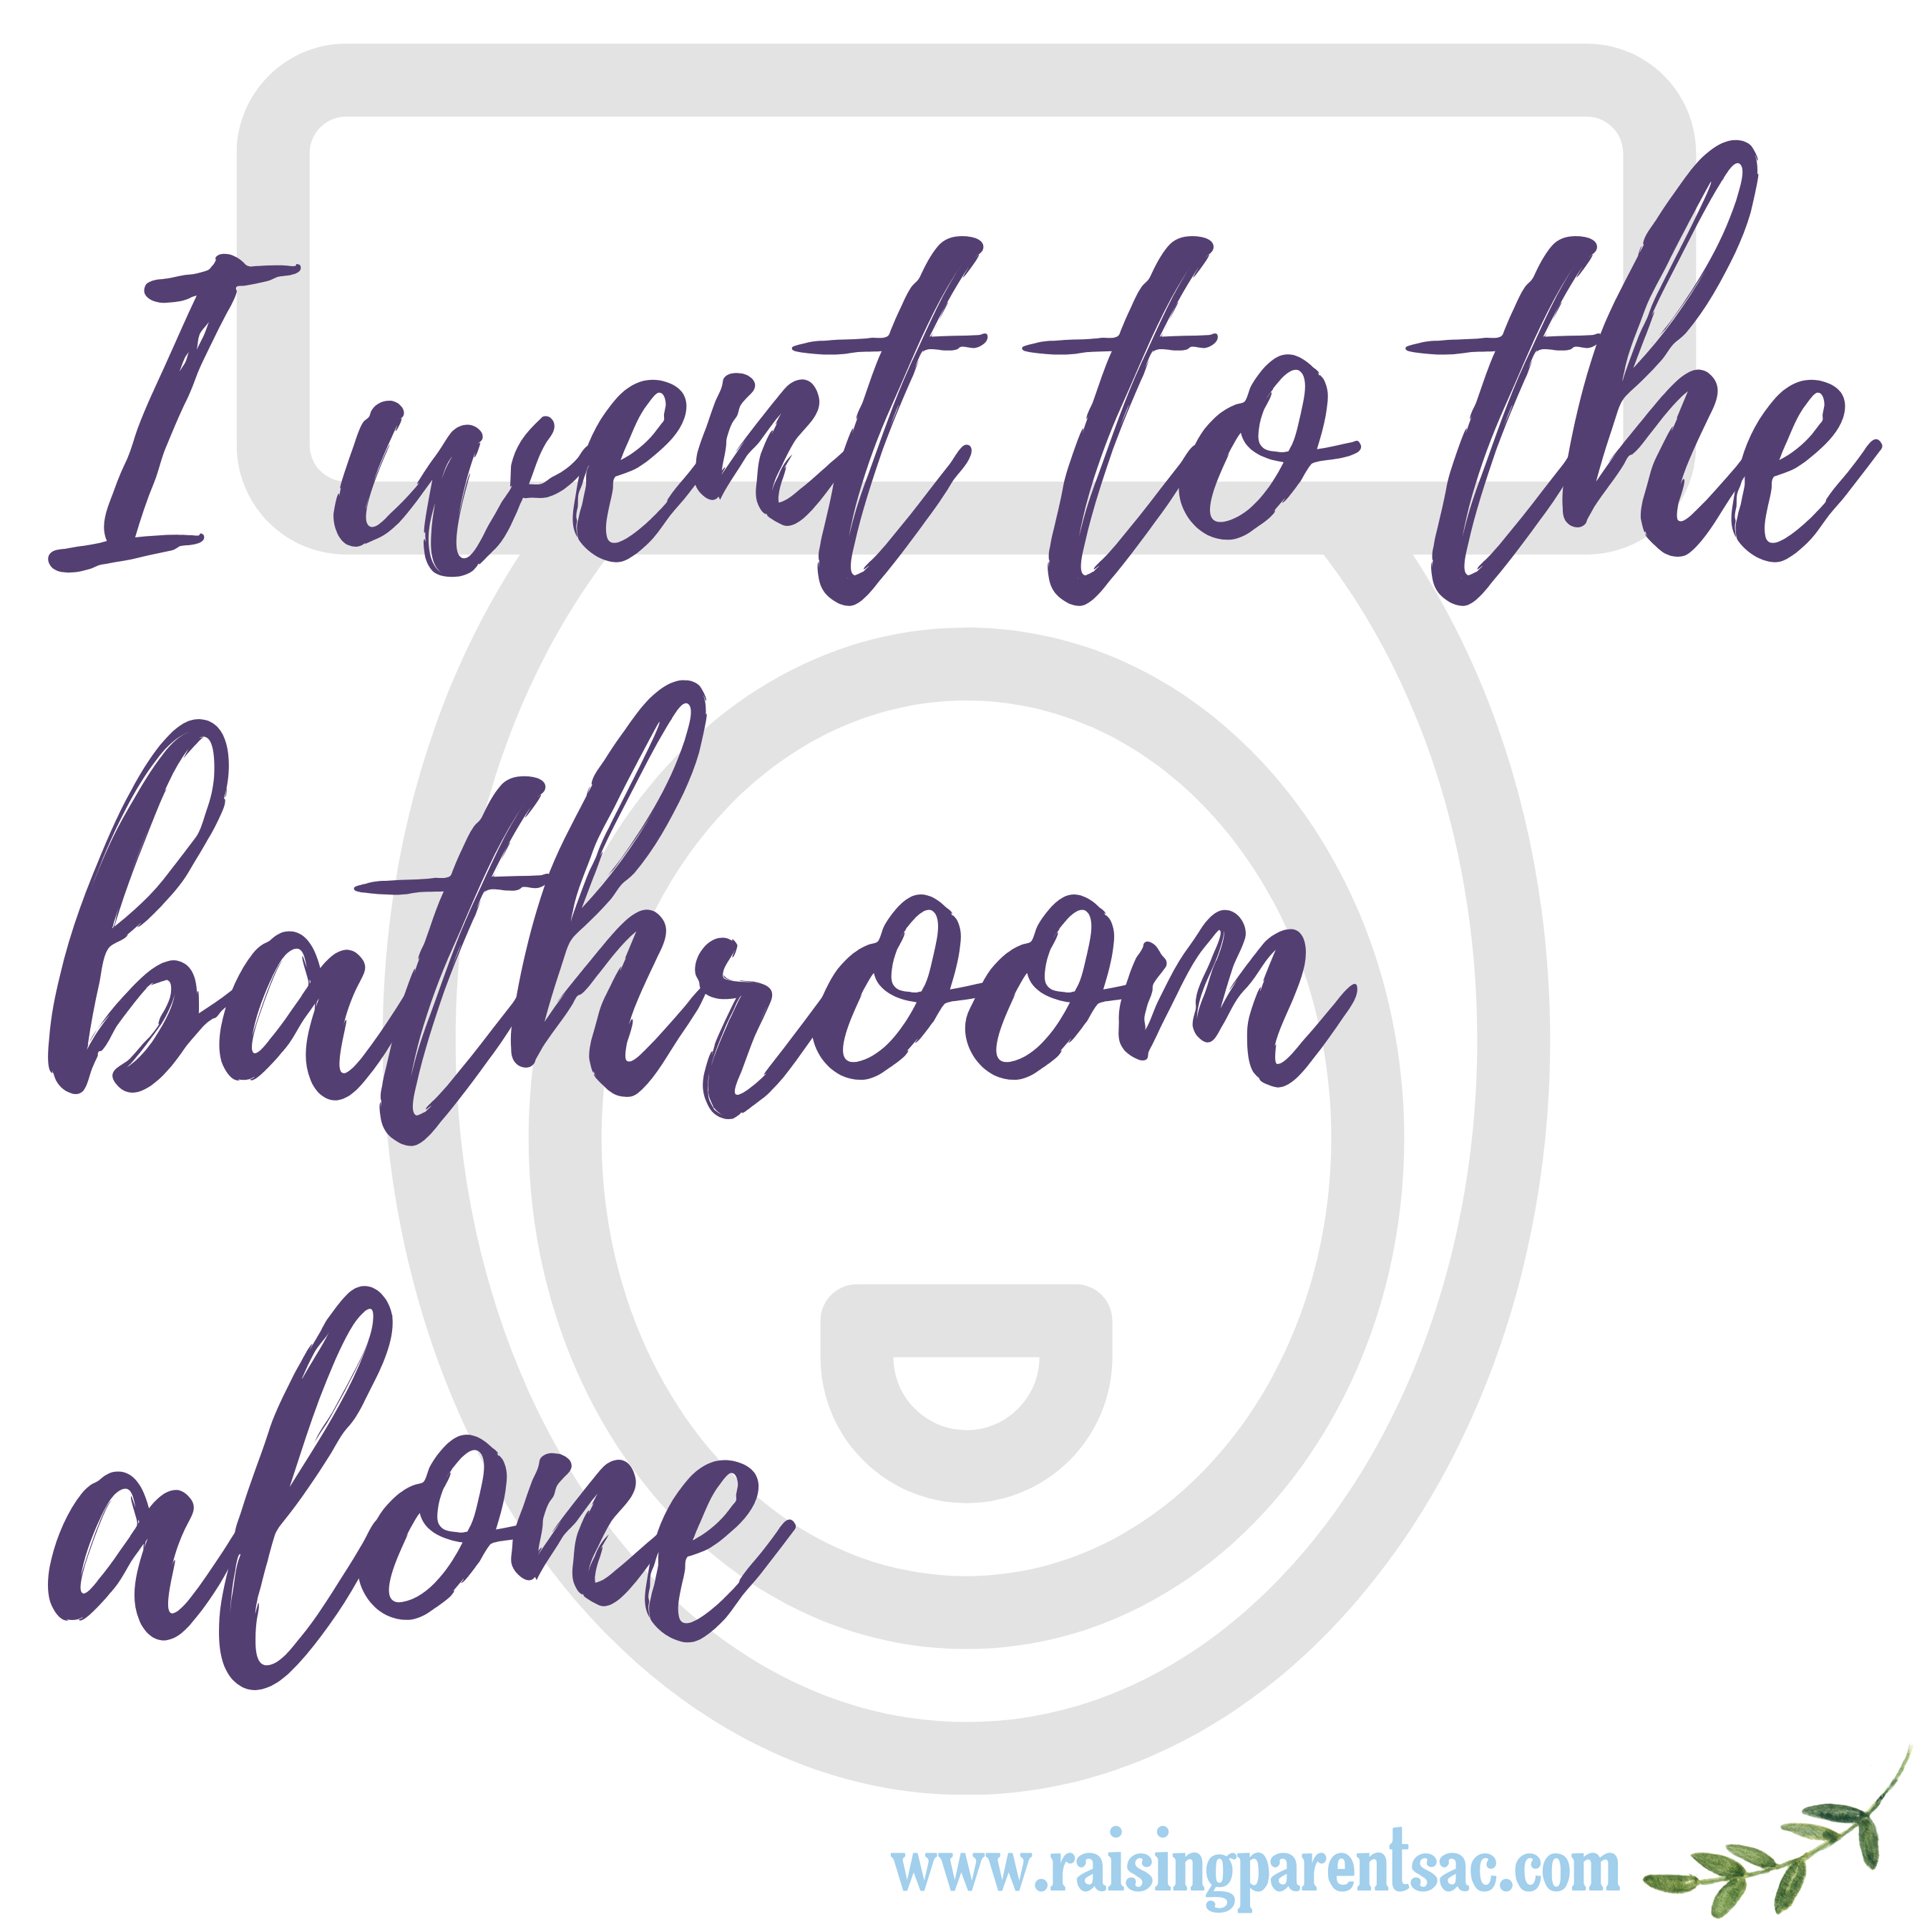 I went to the bathroom alone